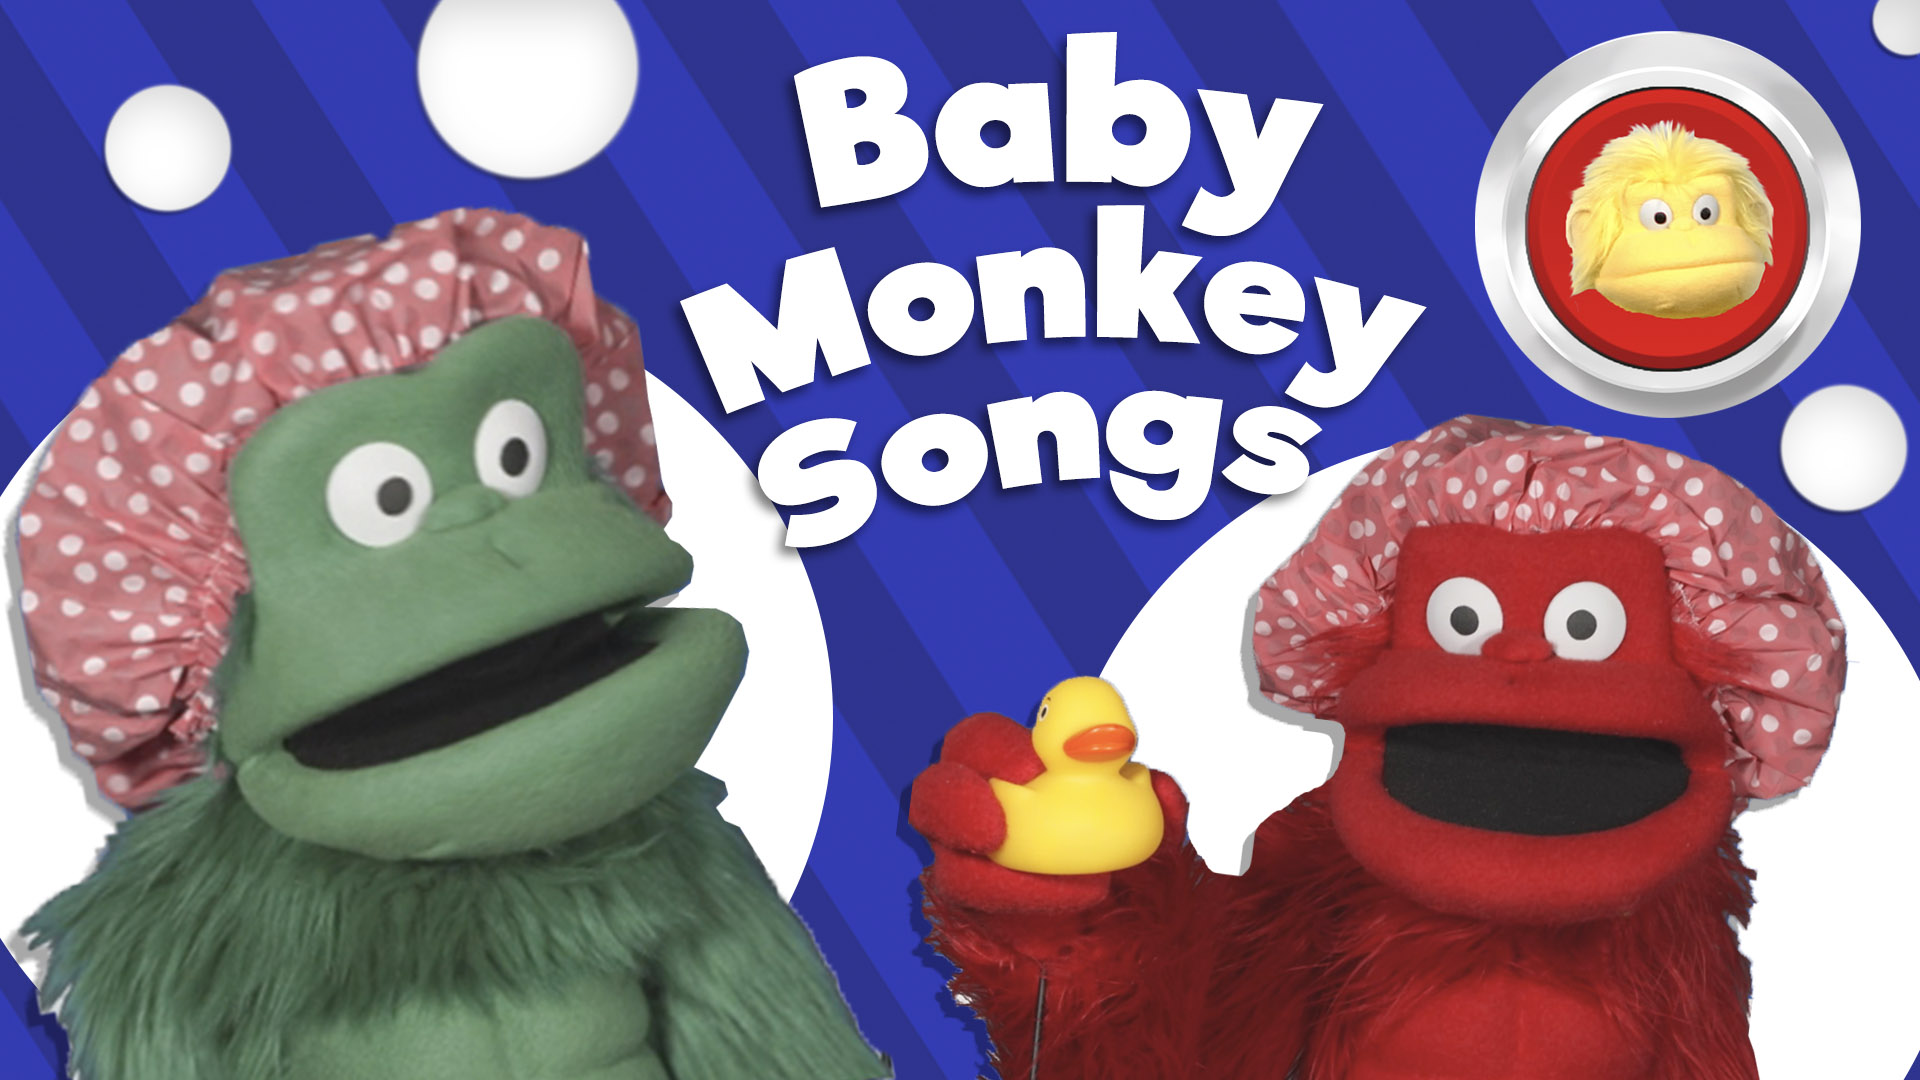 Big Red Button - Baby Monkey Songs